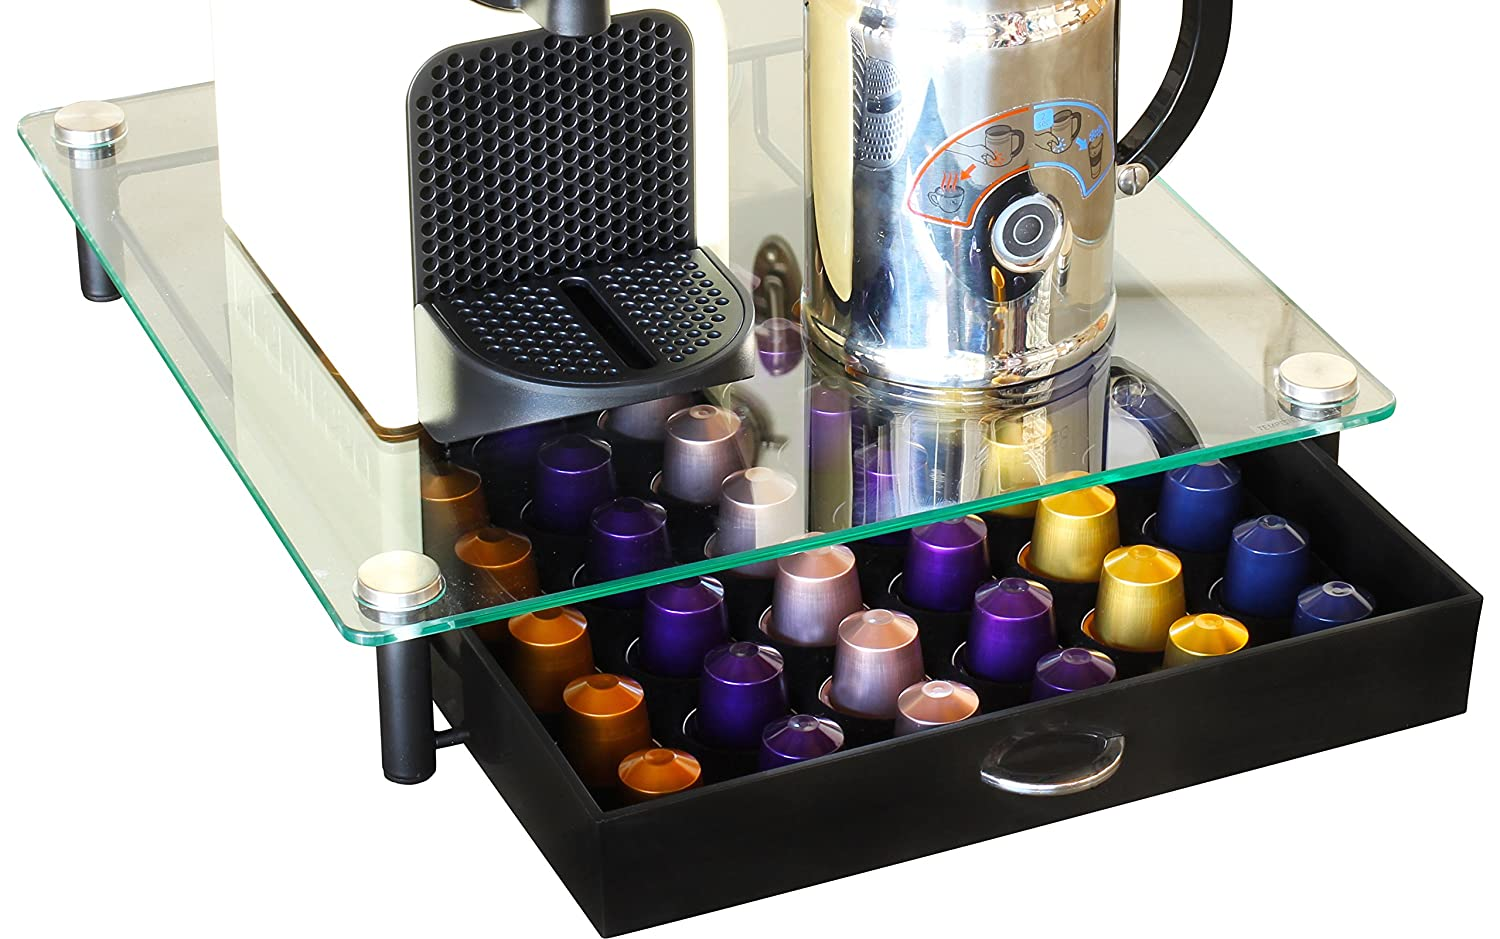 Elegant Amazon.com: DecoBros Coffee Pod Storage Mesh Nespresso Drawer Holder For 56  Capsules, Black: Office Products